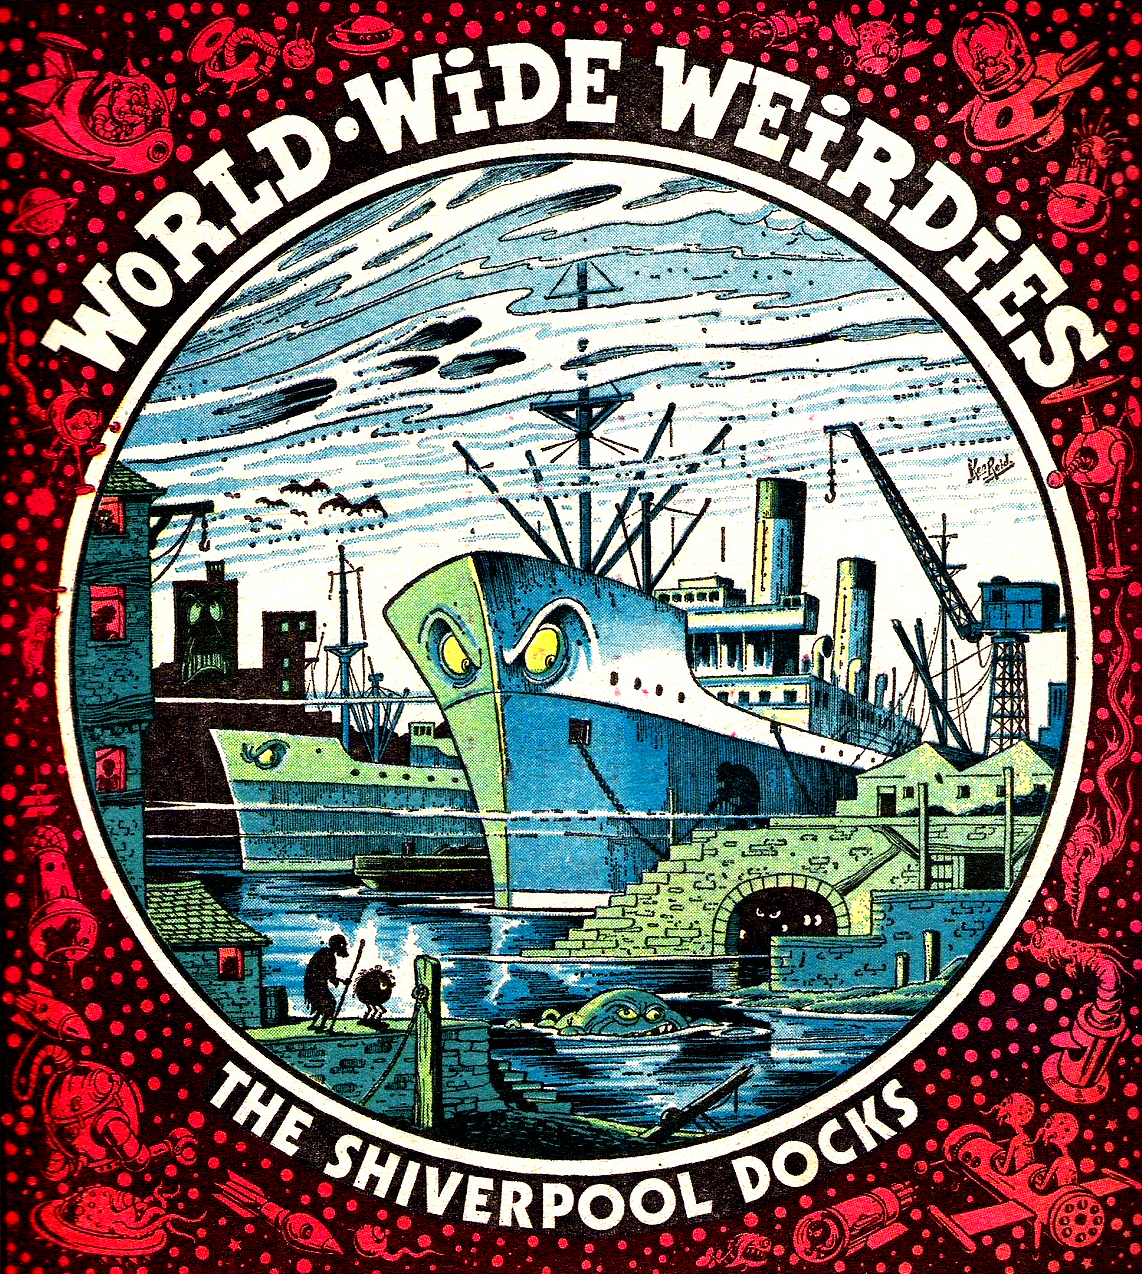 Ken Reid - World Wide Weirdies 49